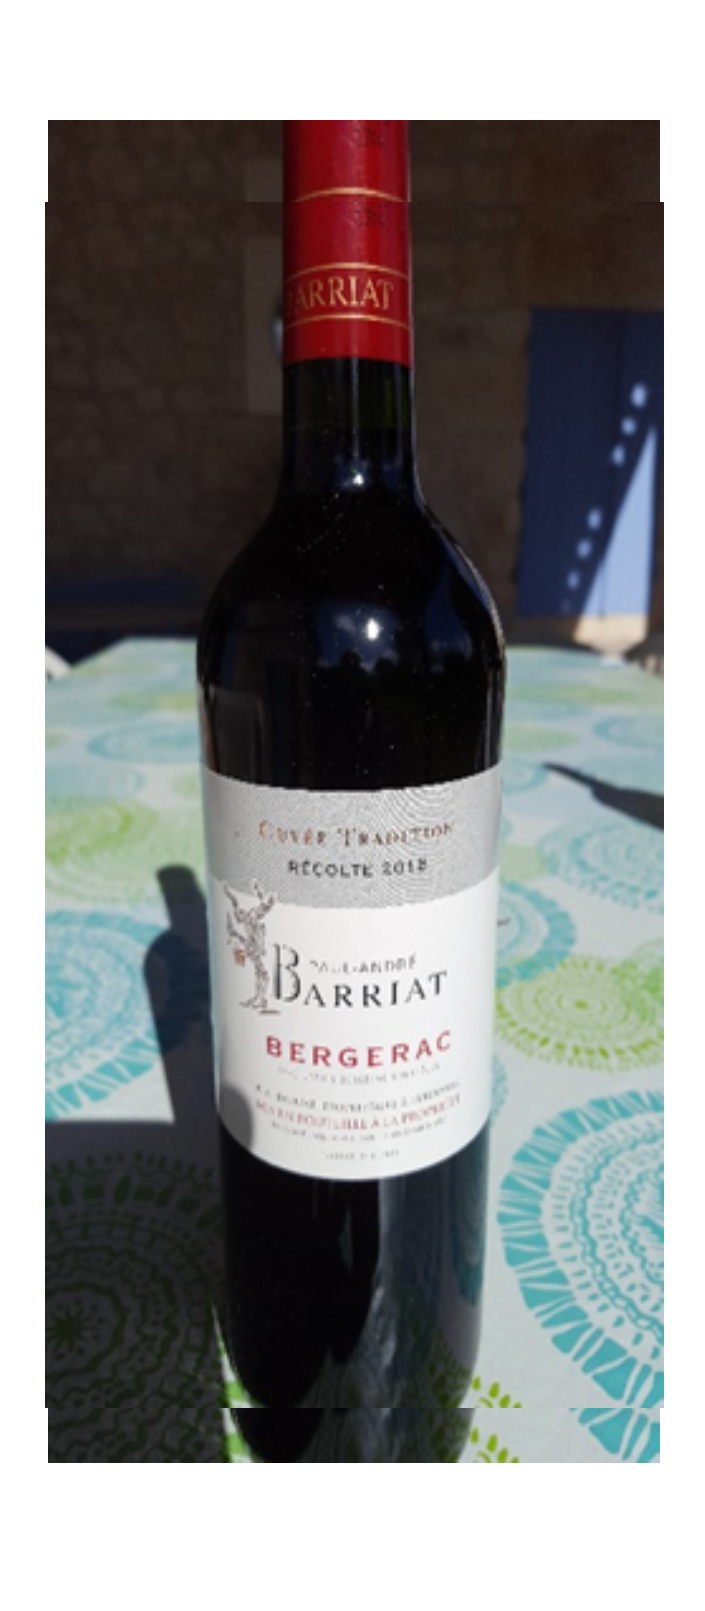 Bergerac Rouge Tradition P.A.Barriat 2018